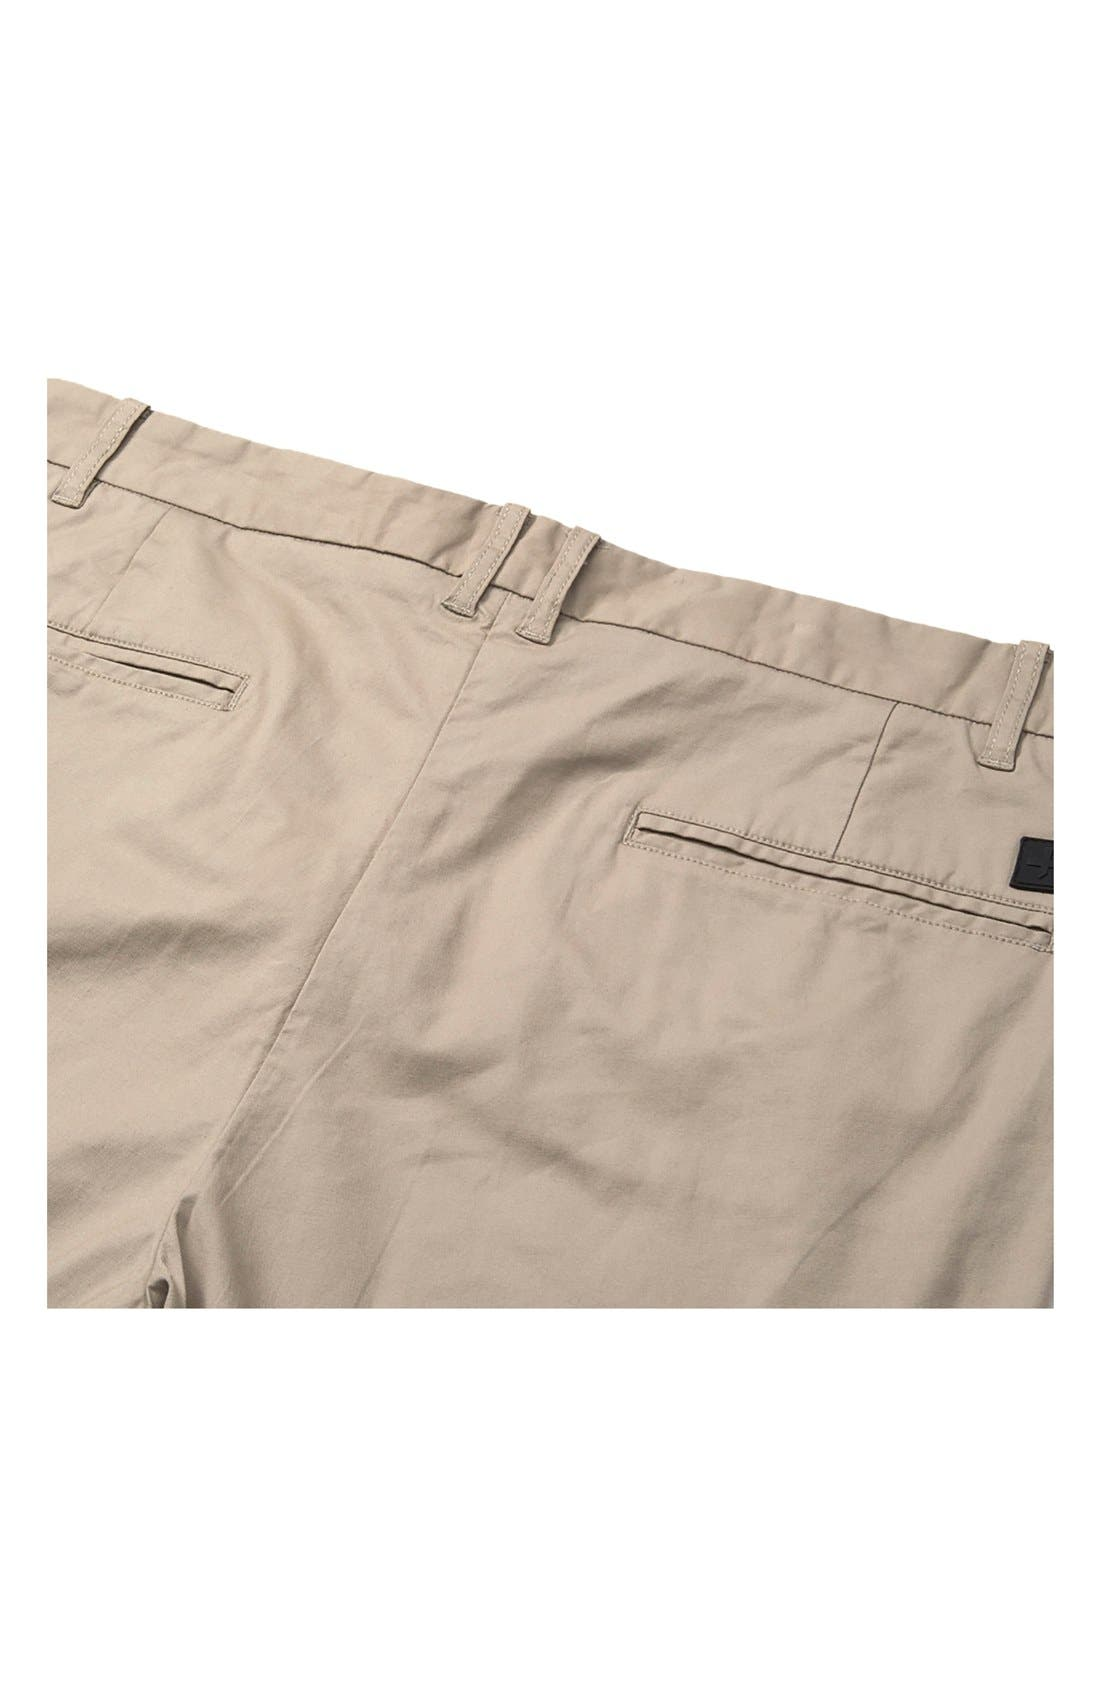 'Arroyo' Crop Stretch Chinos,                             Alternate thumbnail 18, color,